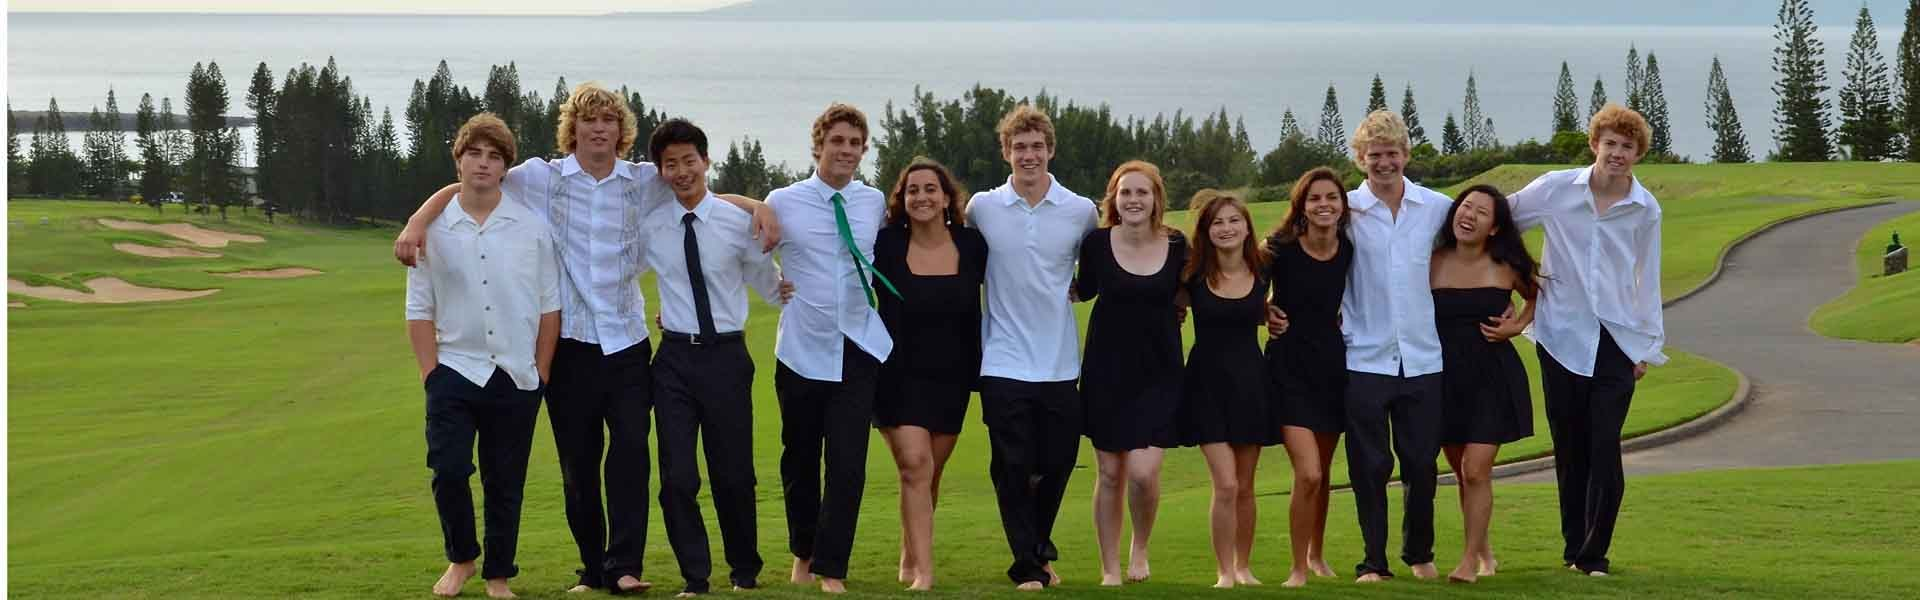 MAuiPreparatoryAcademy-Highschool-Hawaii-AwardCeremony-MAin-BAnner-2019